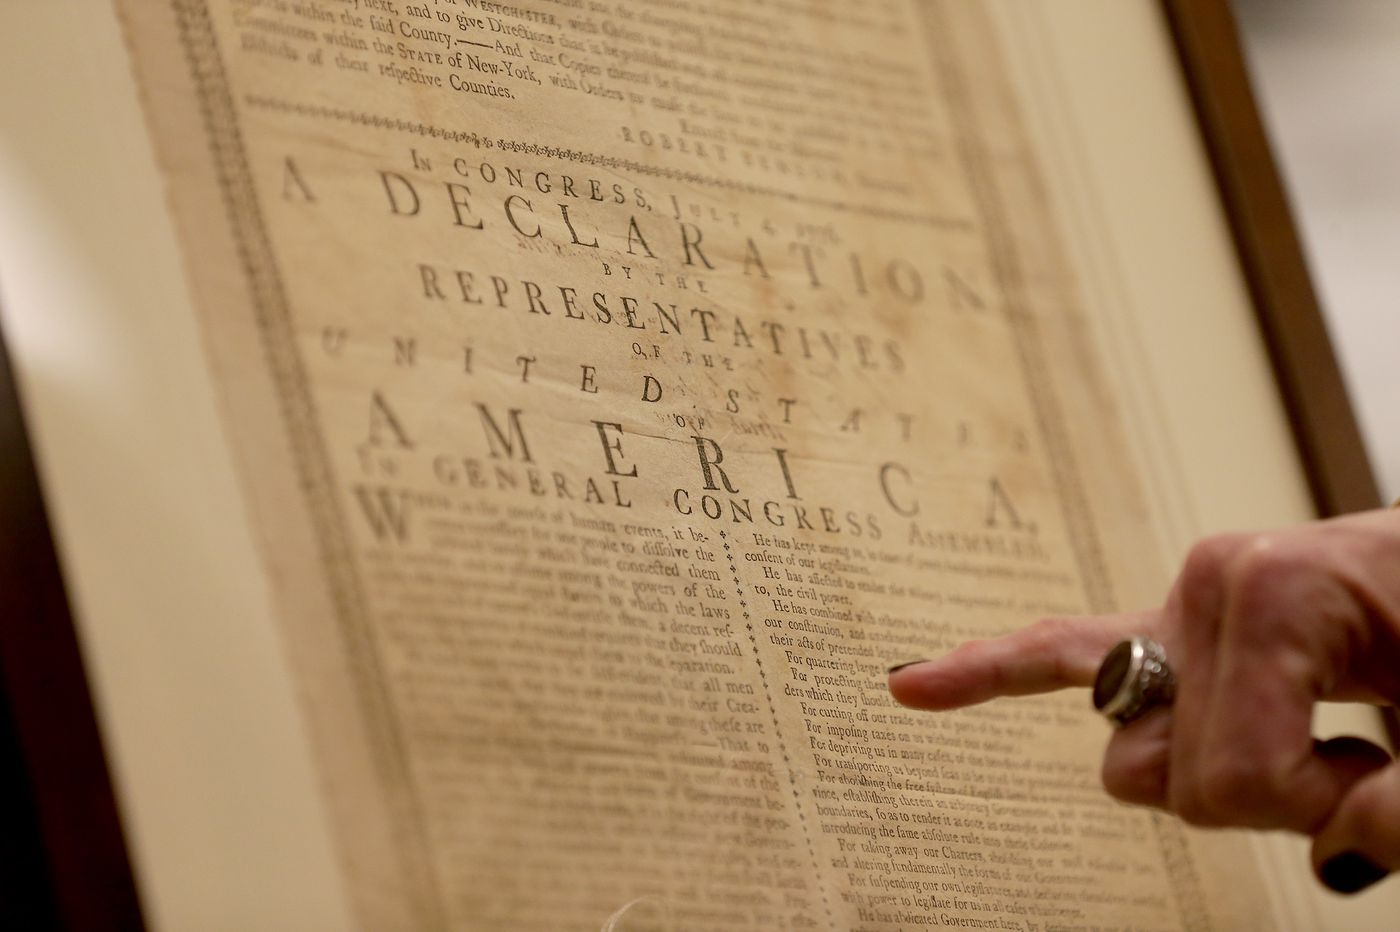 Museum of the American Revolution will show off a version of the Declaration of Independence that hasn't been seen publicly for a century